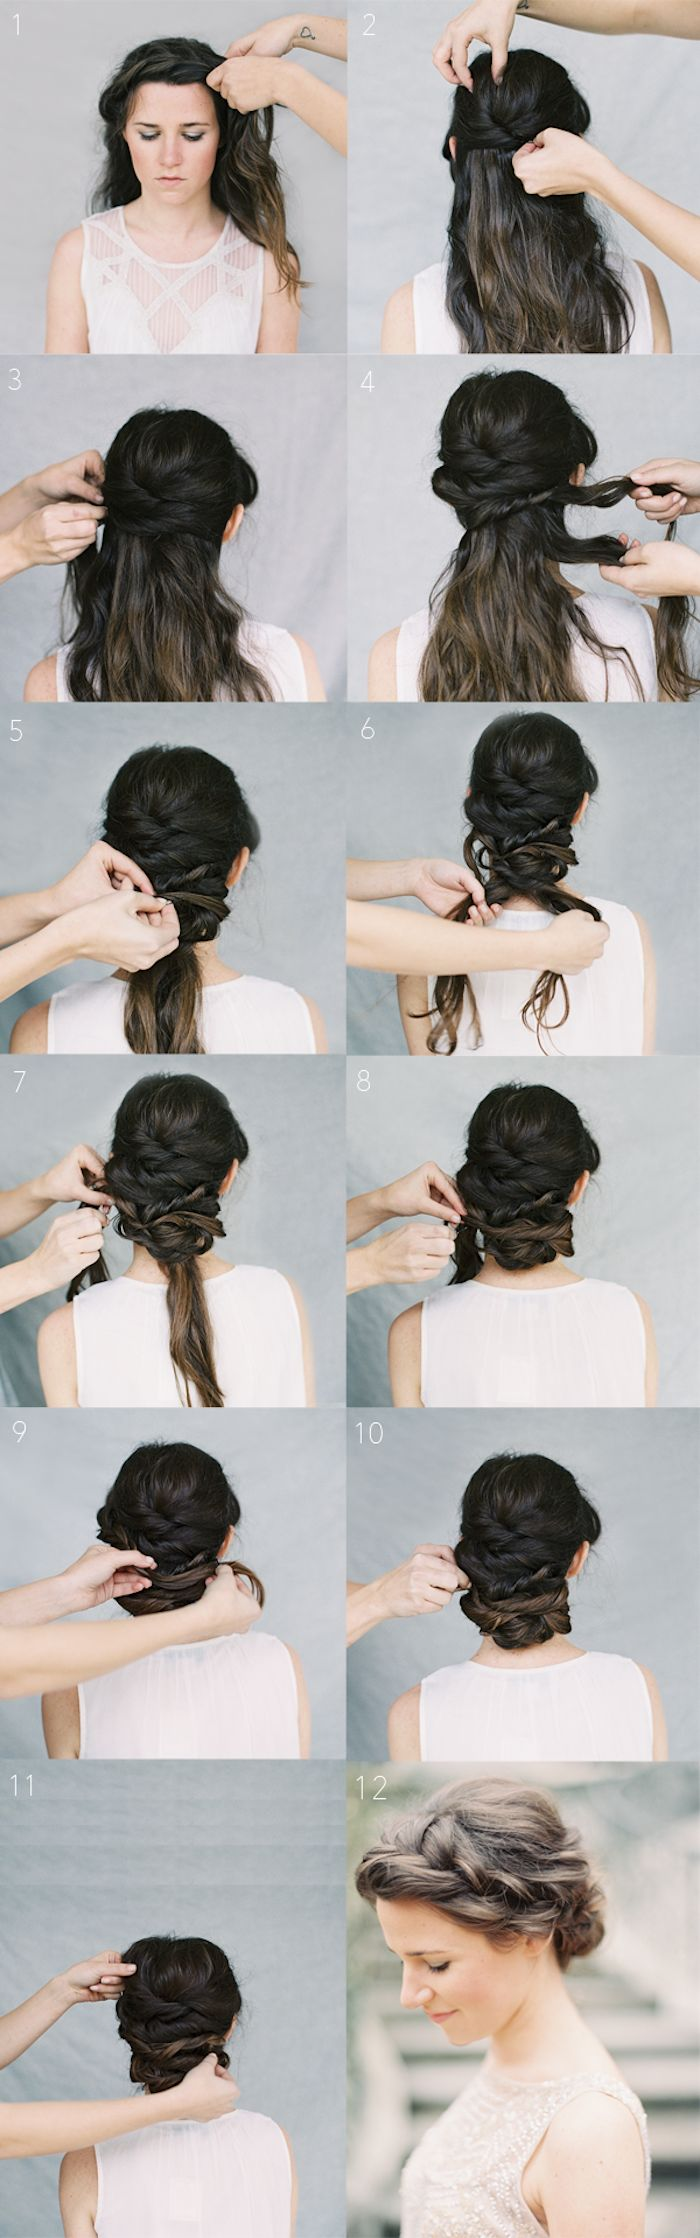 The best images about tips u tricks on pinterest the boat